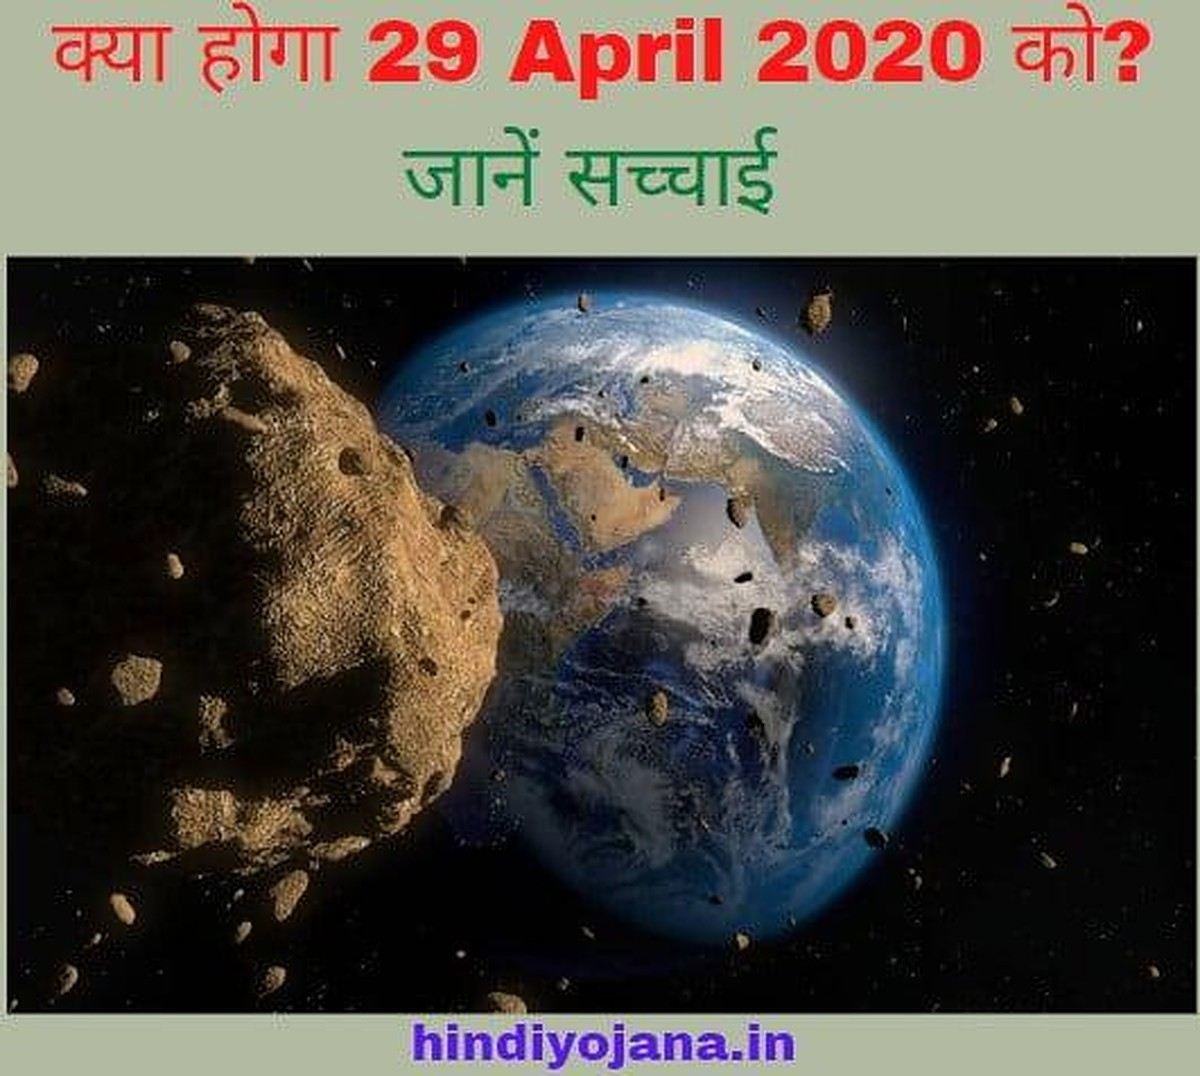 What will happen on April 29